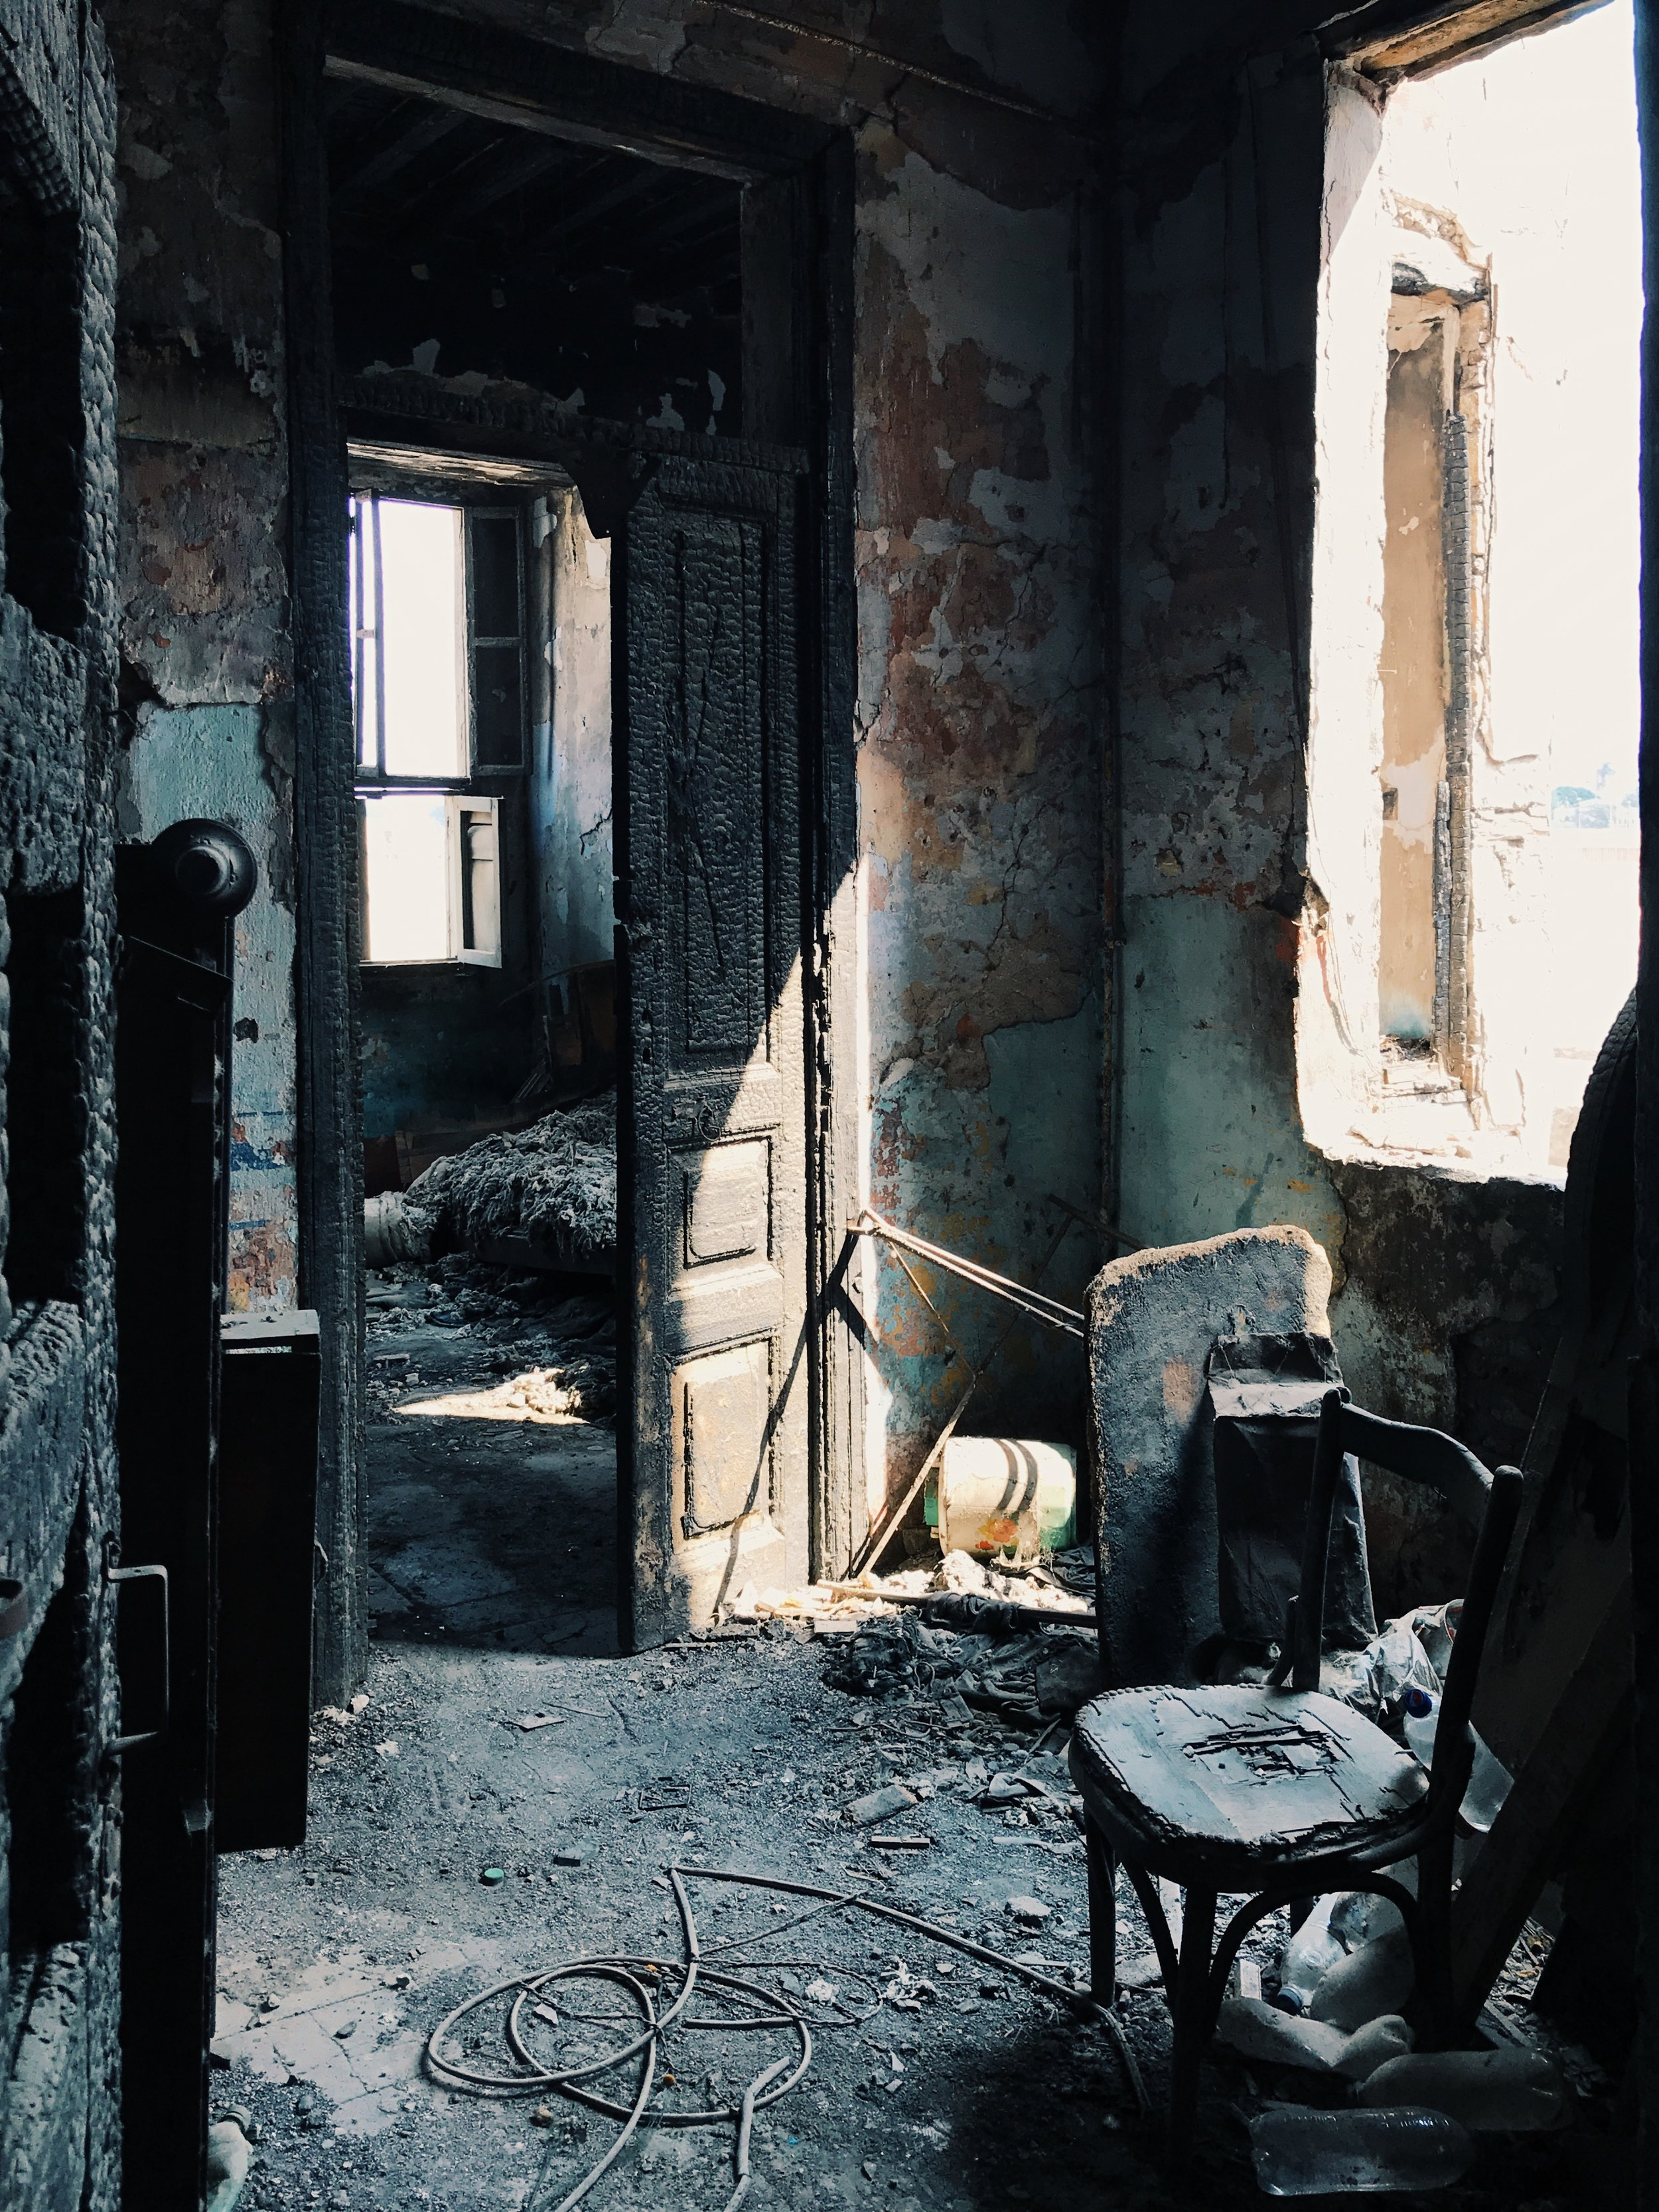 A burned door that remains shedding its ashes... its open leading to another room with a decayed bed that seems to have been beaten badly by the days...